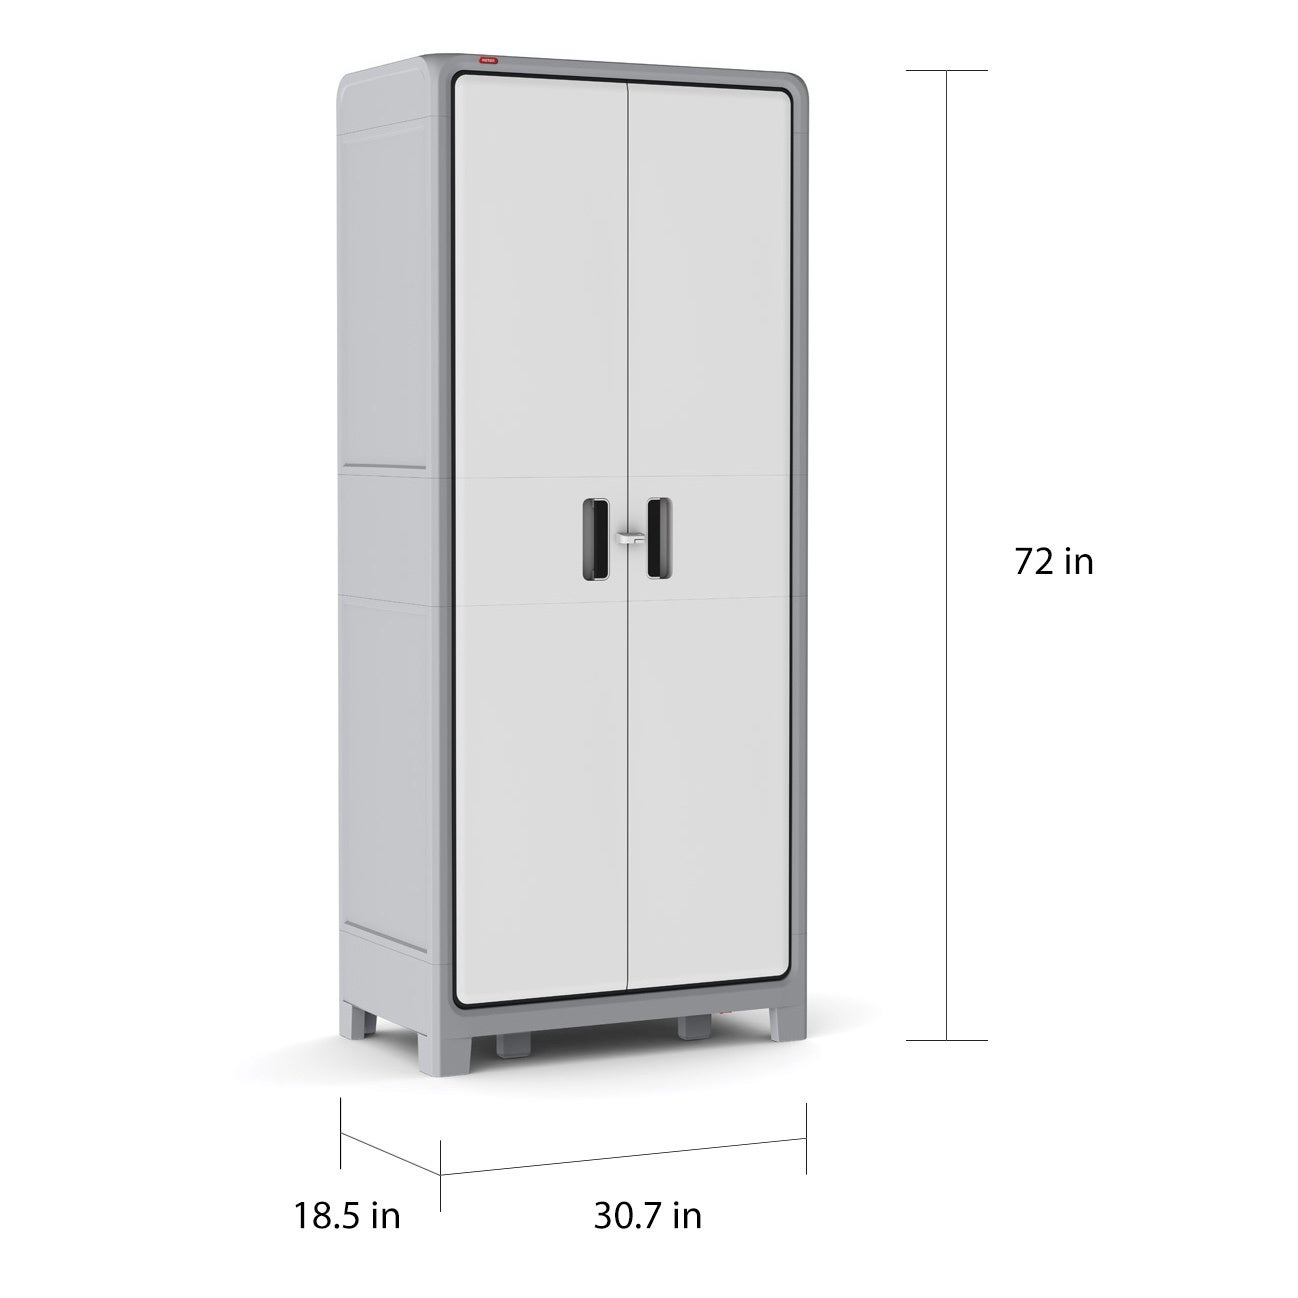 Keter Optima Wonder White And Grey Plastic Freestanding Utility Cabinet Free Shipping Today 12056988